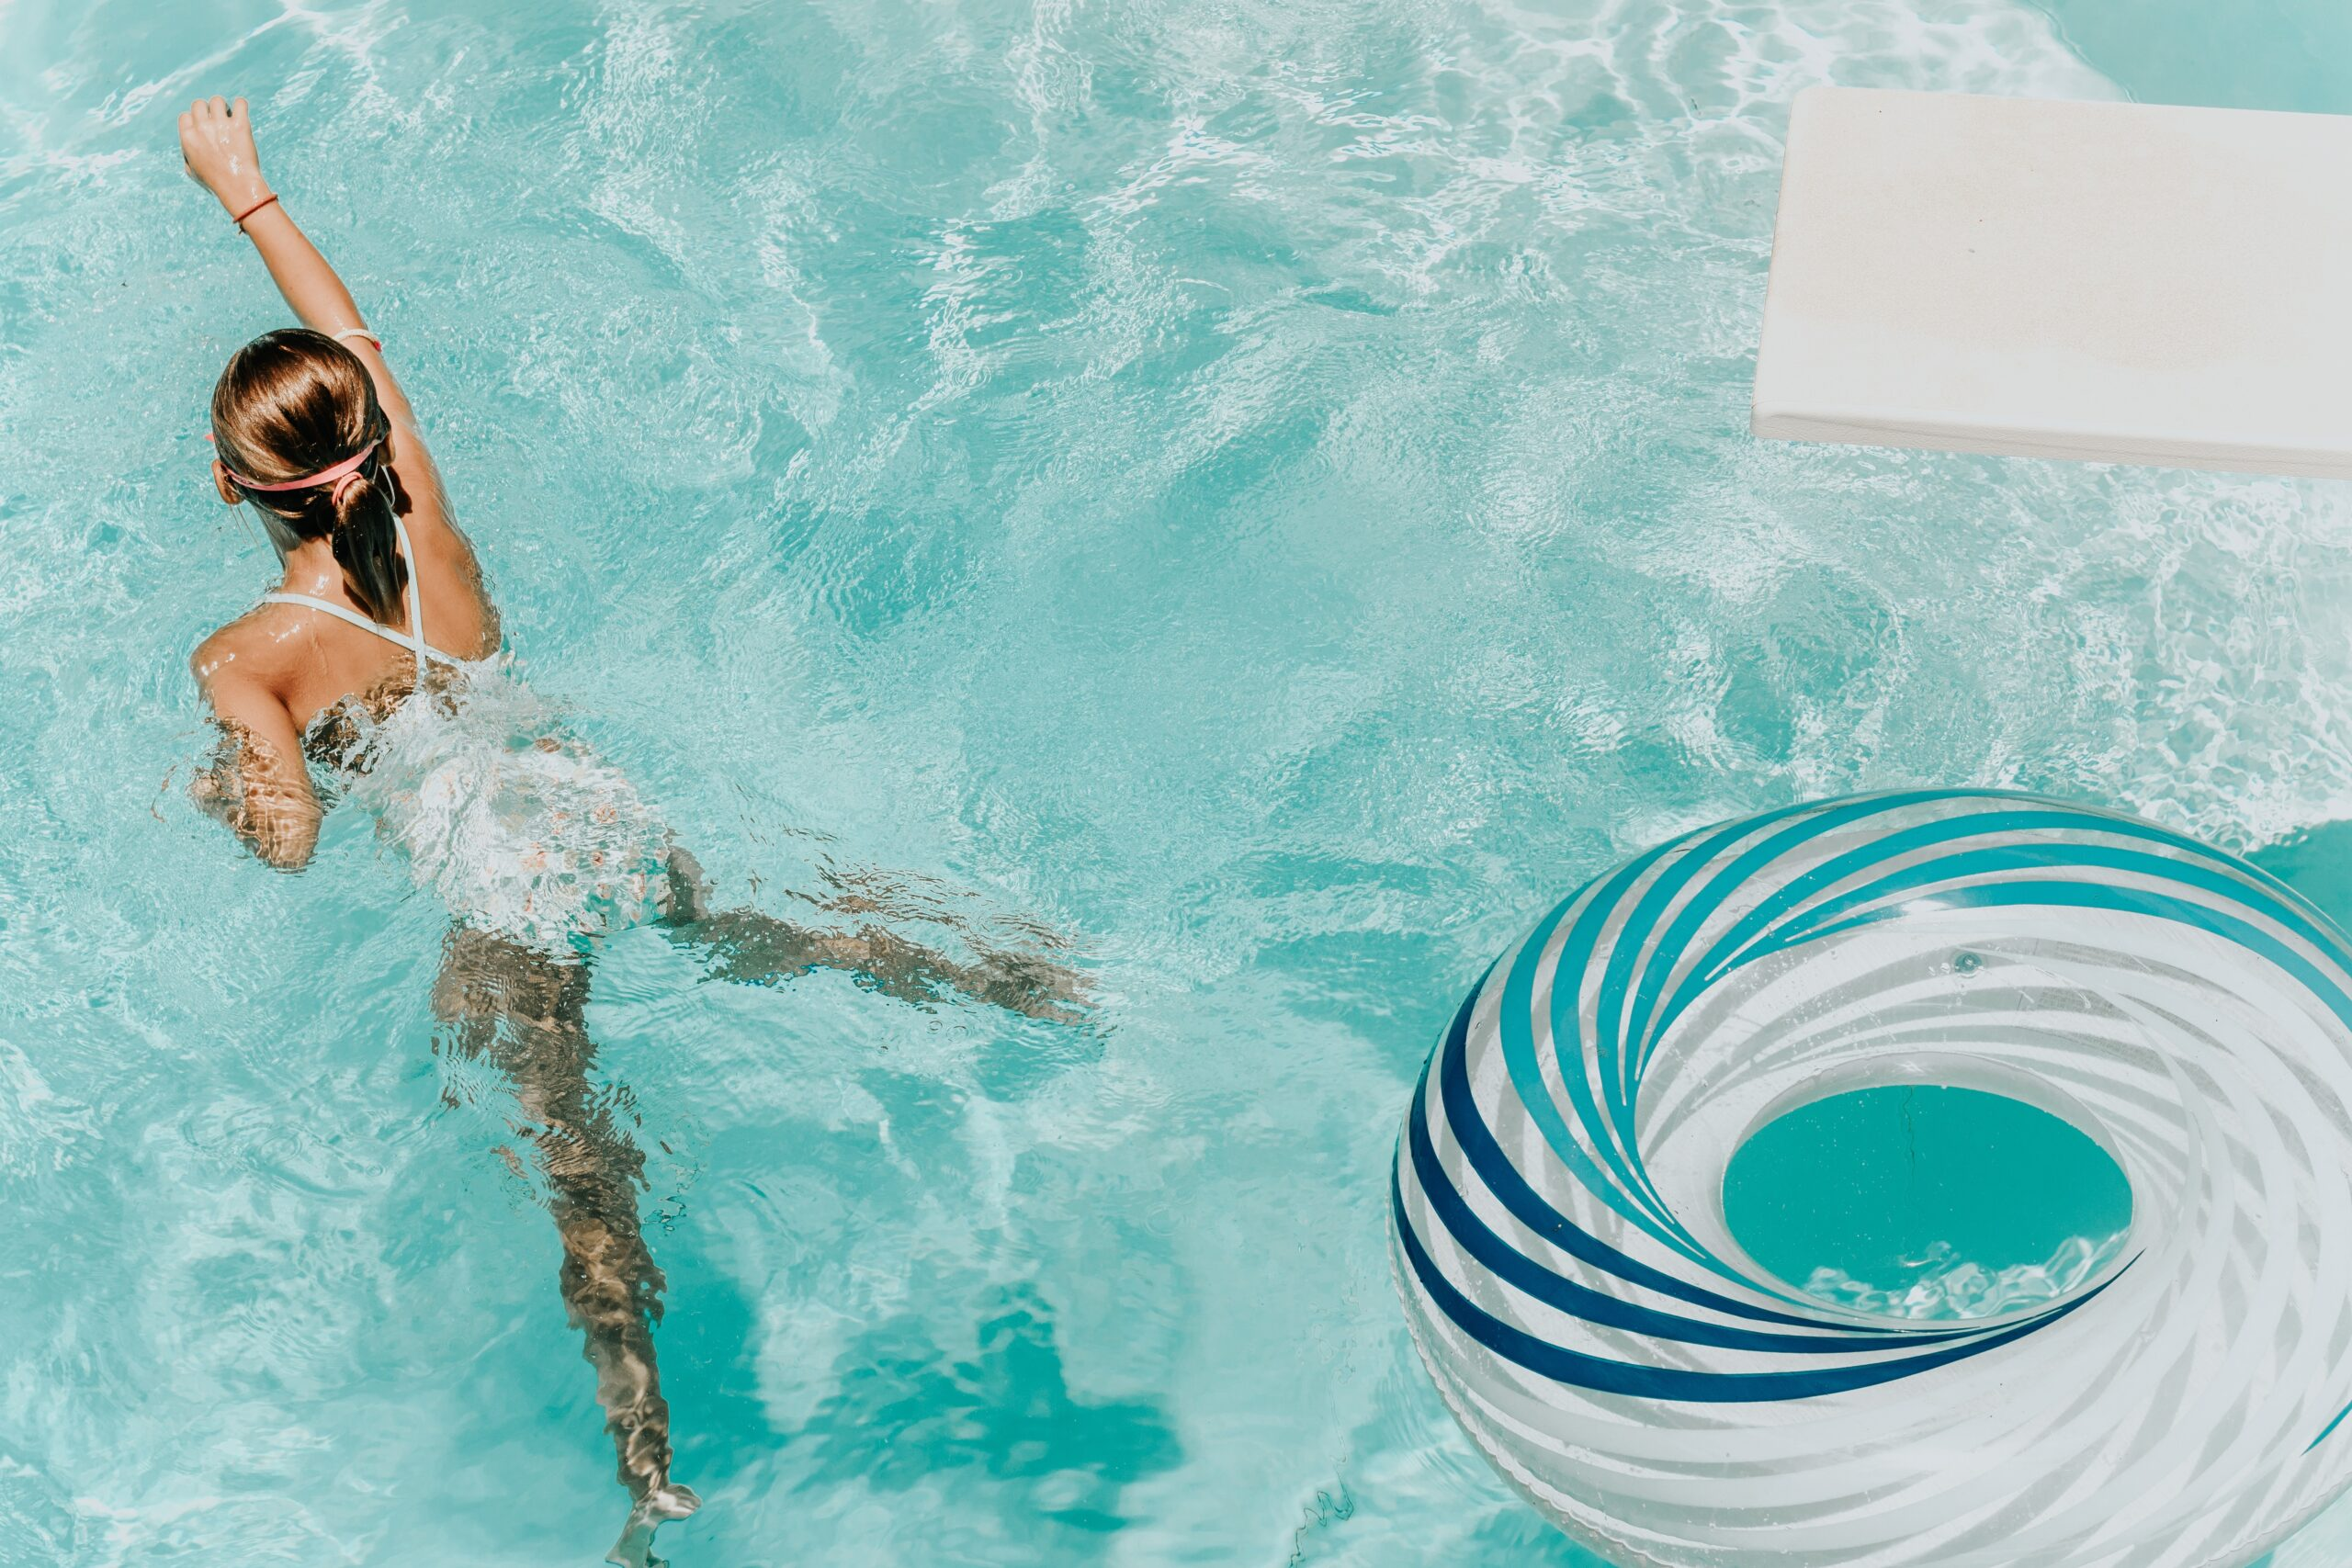 woman swimming in pool with float